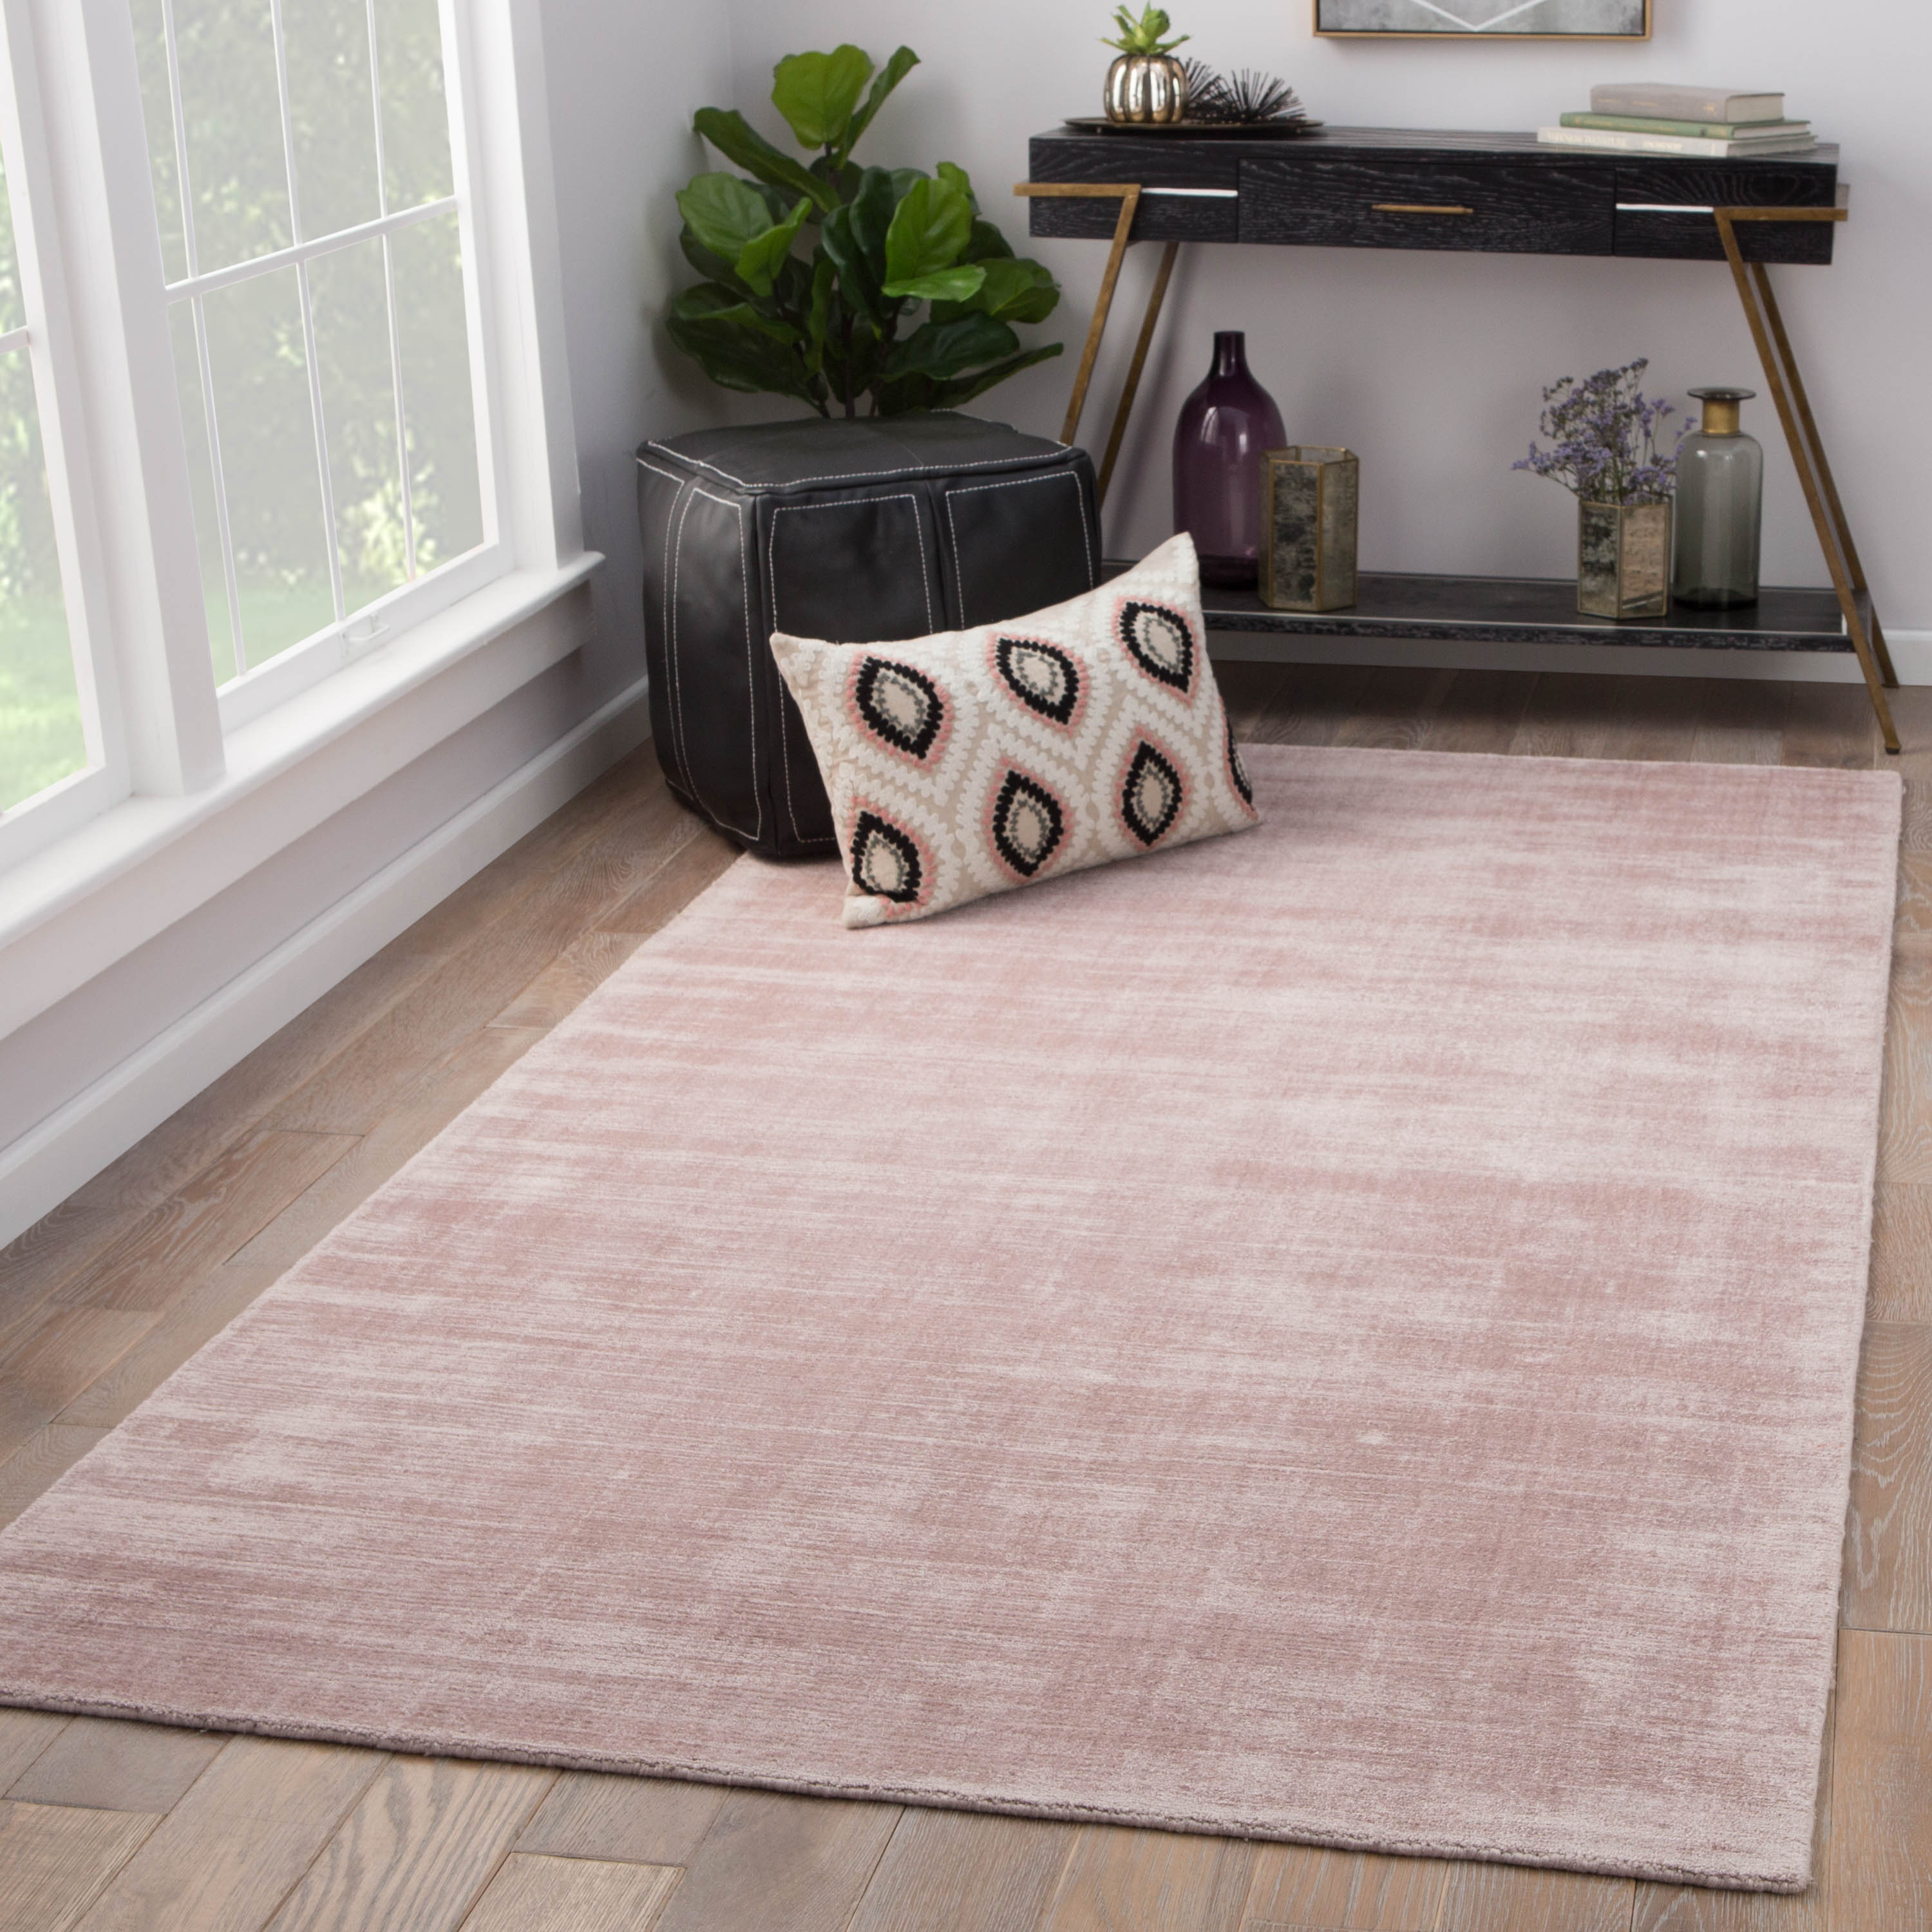 Rectangle Pink Solid Hand Loomed Synthetics Contemporary recommended for Bedroom, Bathroom, Kids, Dining Room, Office, Hallway, Living Room